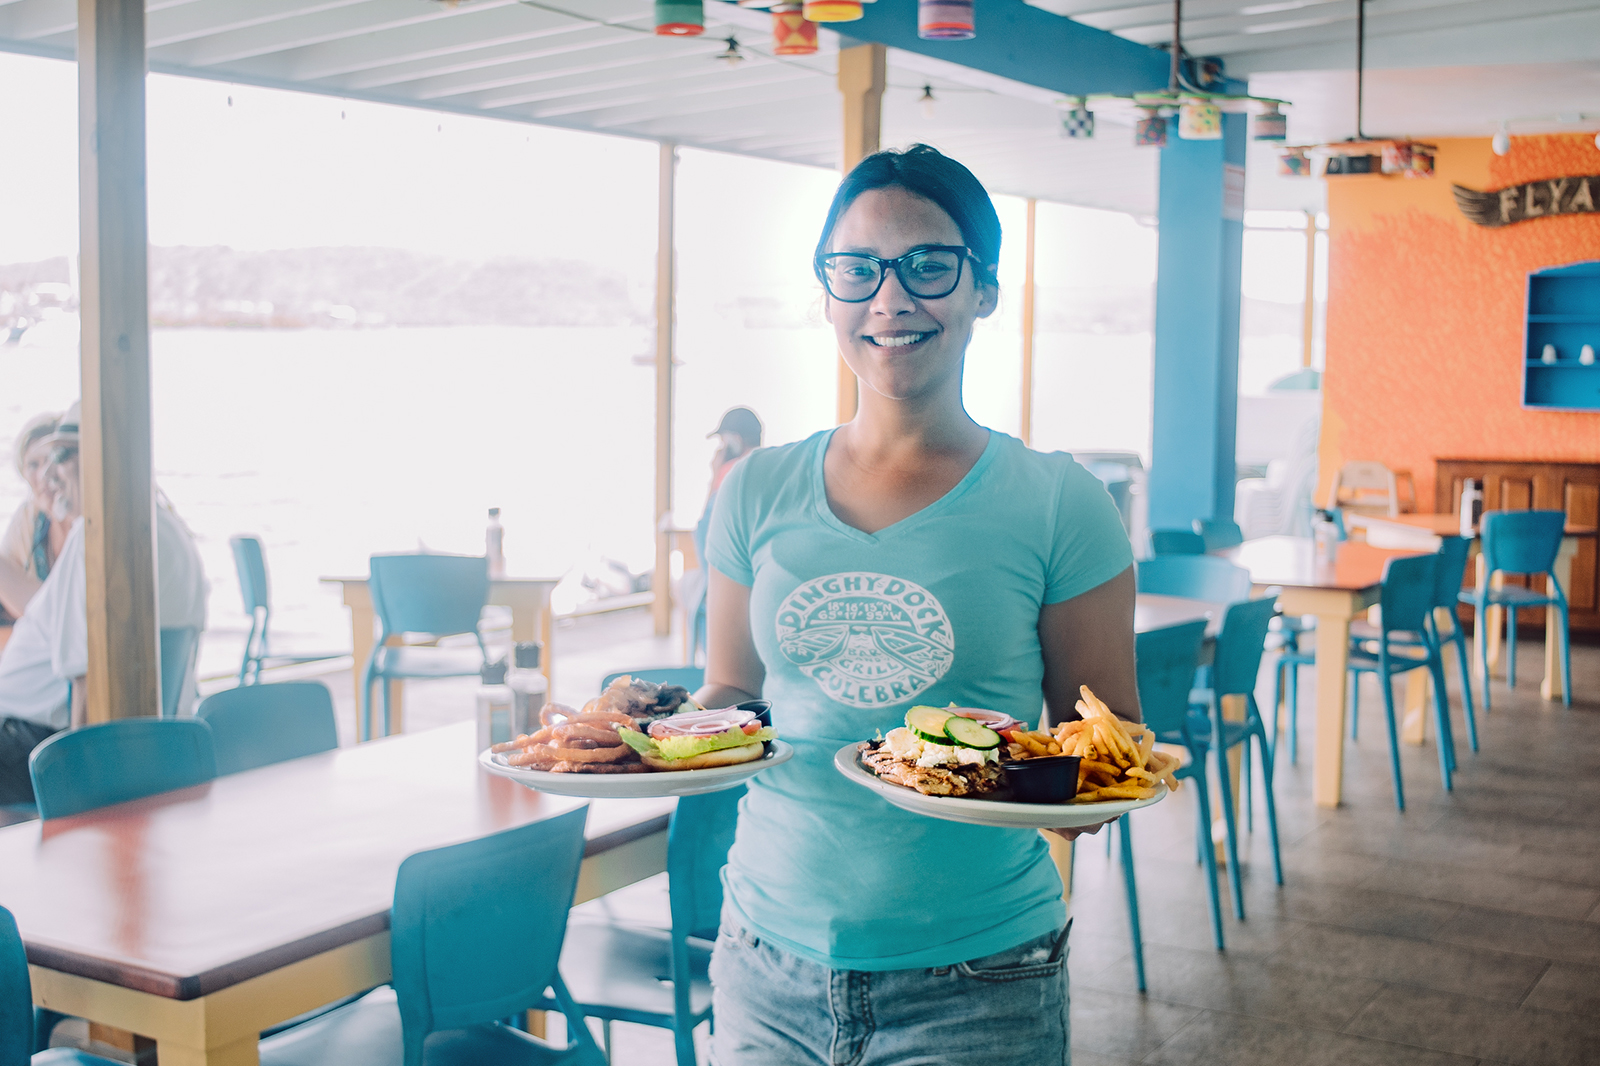 A waiter holds two plates with delicious food in Culebra.